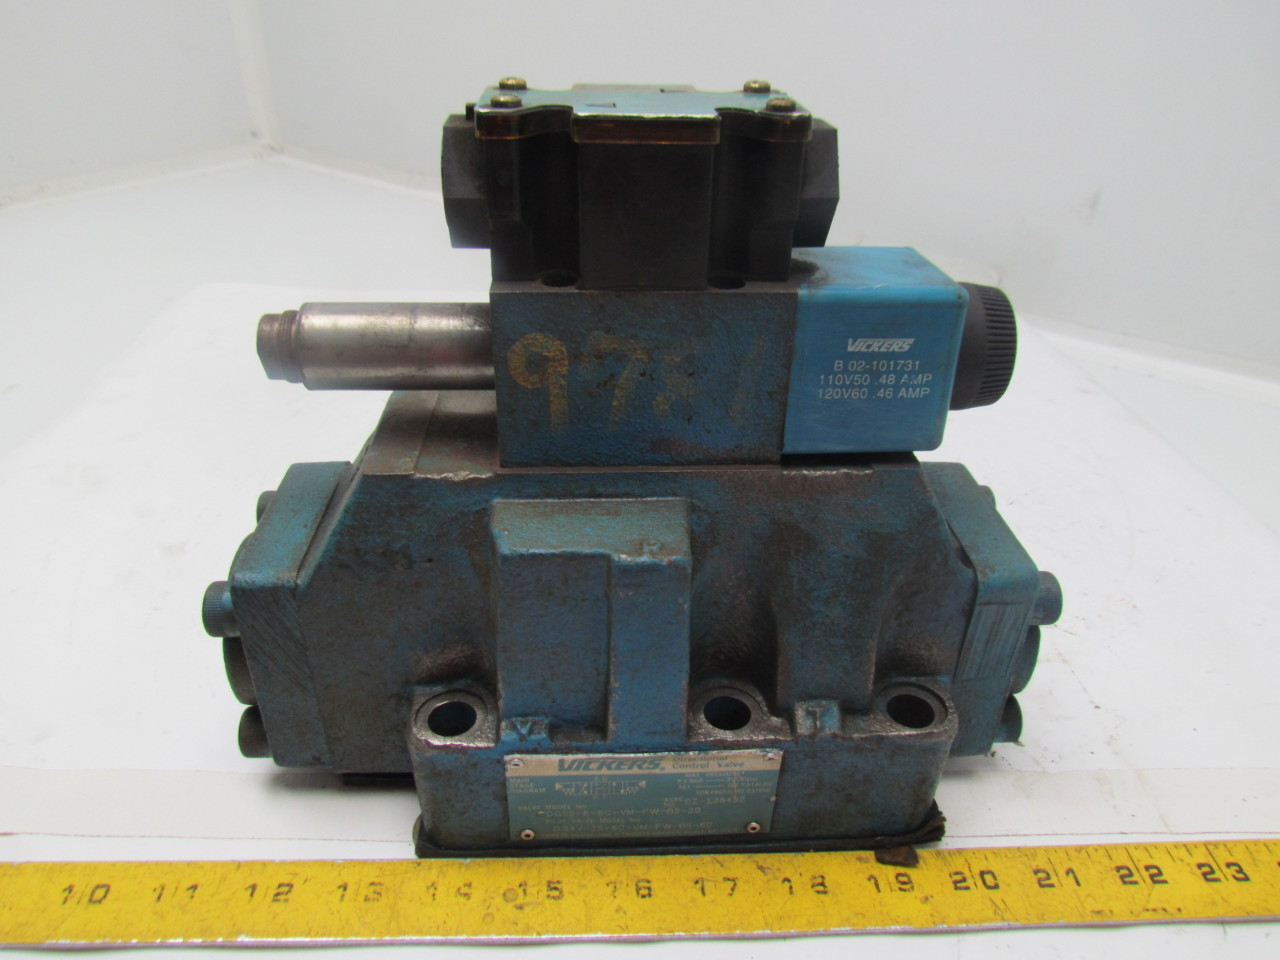 Eaton Vickers DG5S-8-8C-VM-FW-B5-30 Two Stage Solenoid 4 Way Hydraulic Valve